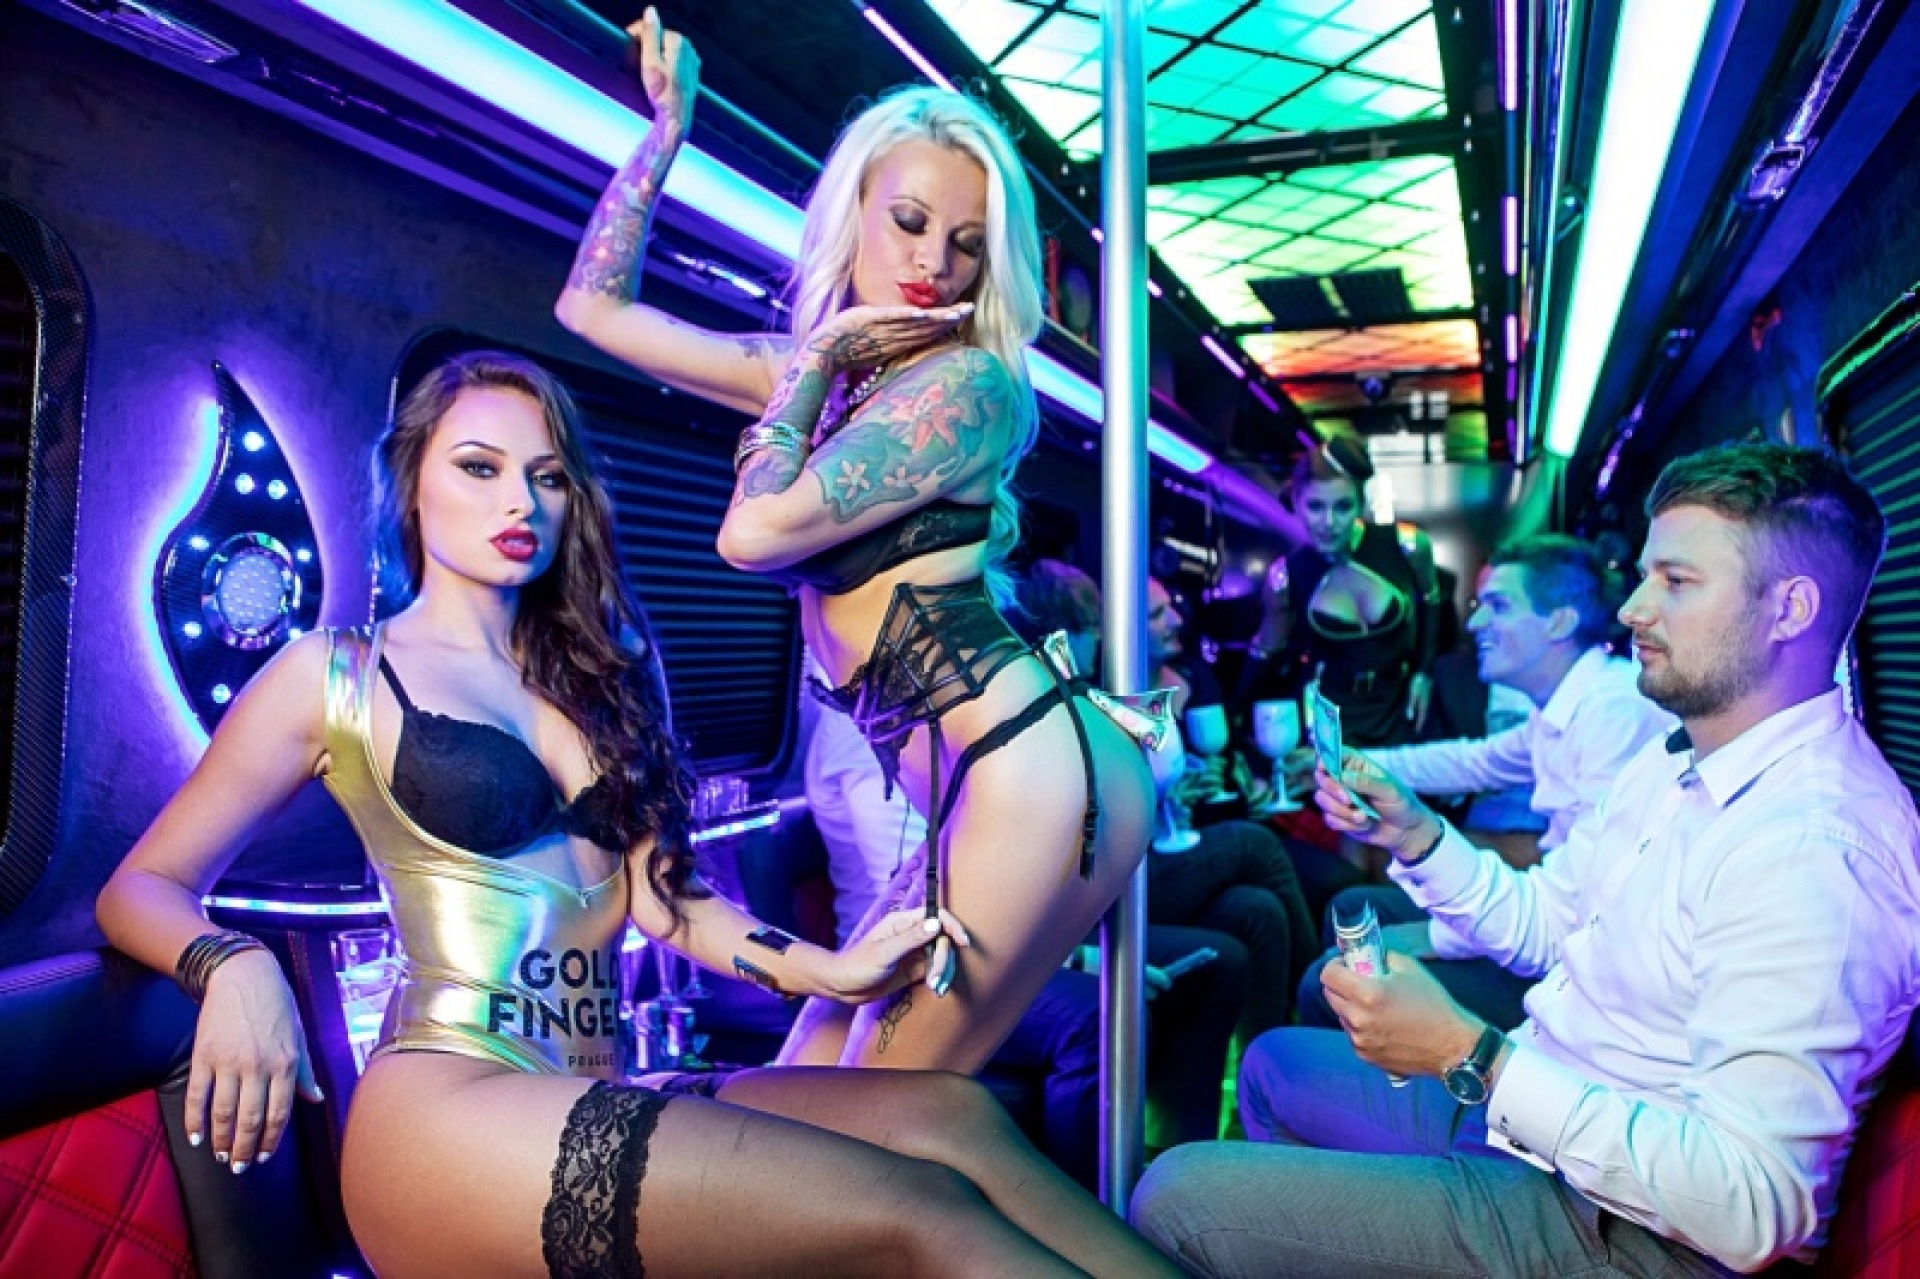 strippers in the VIP Stip Shuttle